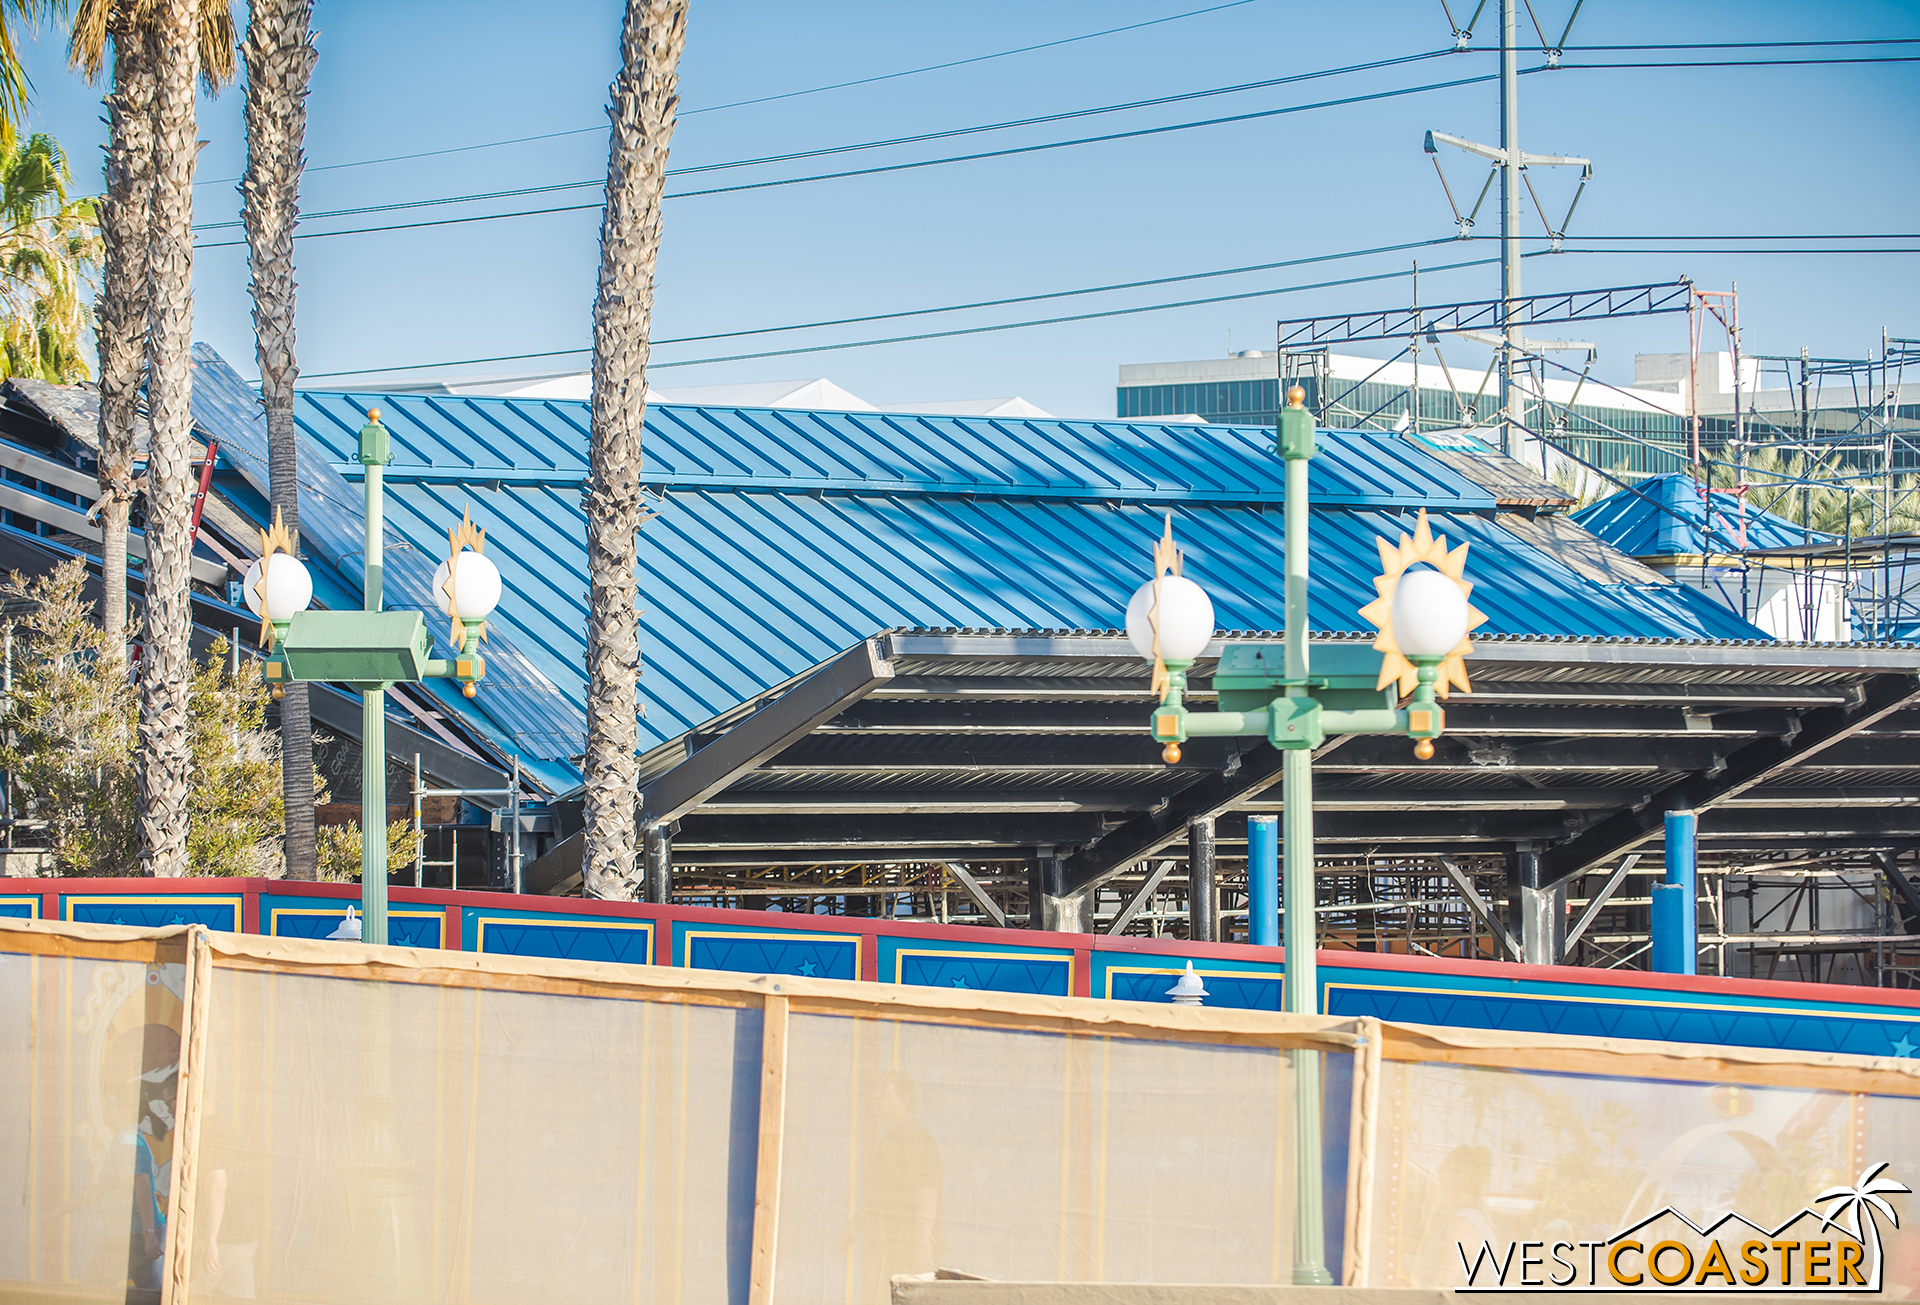 They've added decking to the chevron roof extension too.